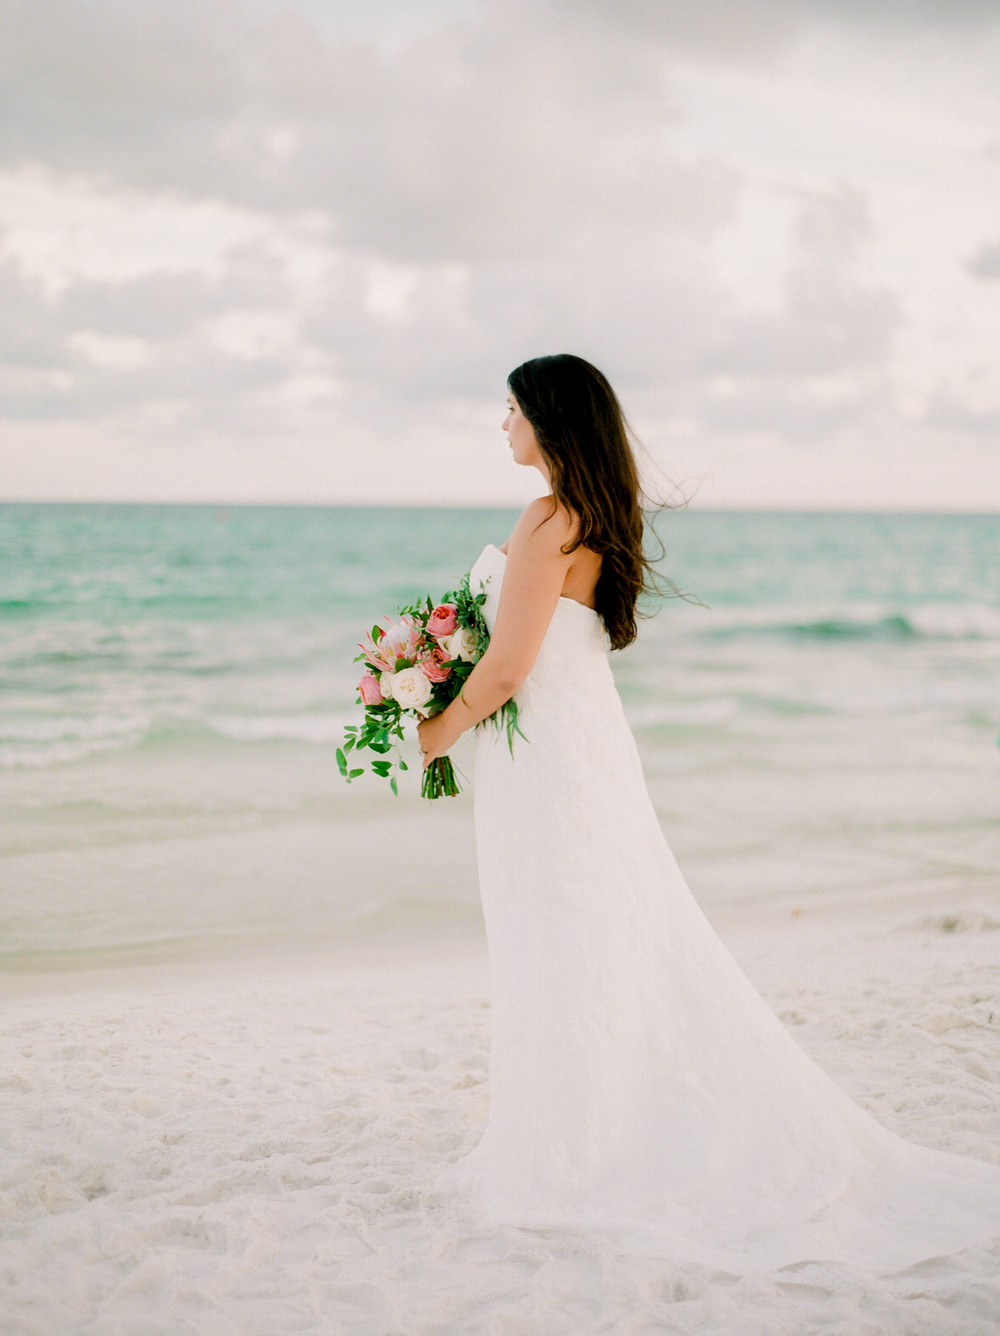 Florida wedding on the beach | Kaylie B. Poplin Photography | Watercolor, Florida fine art wedding photographer